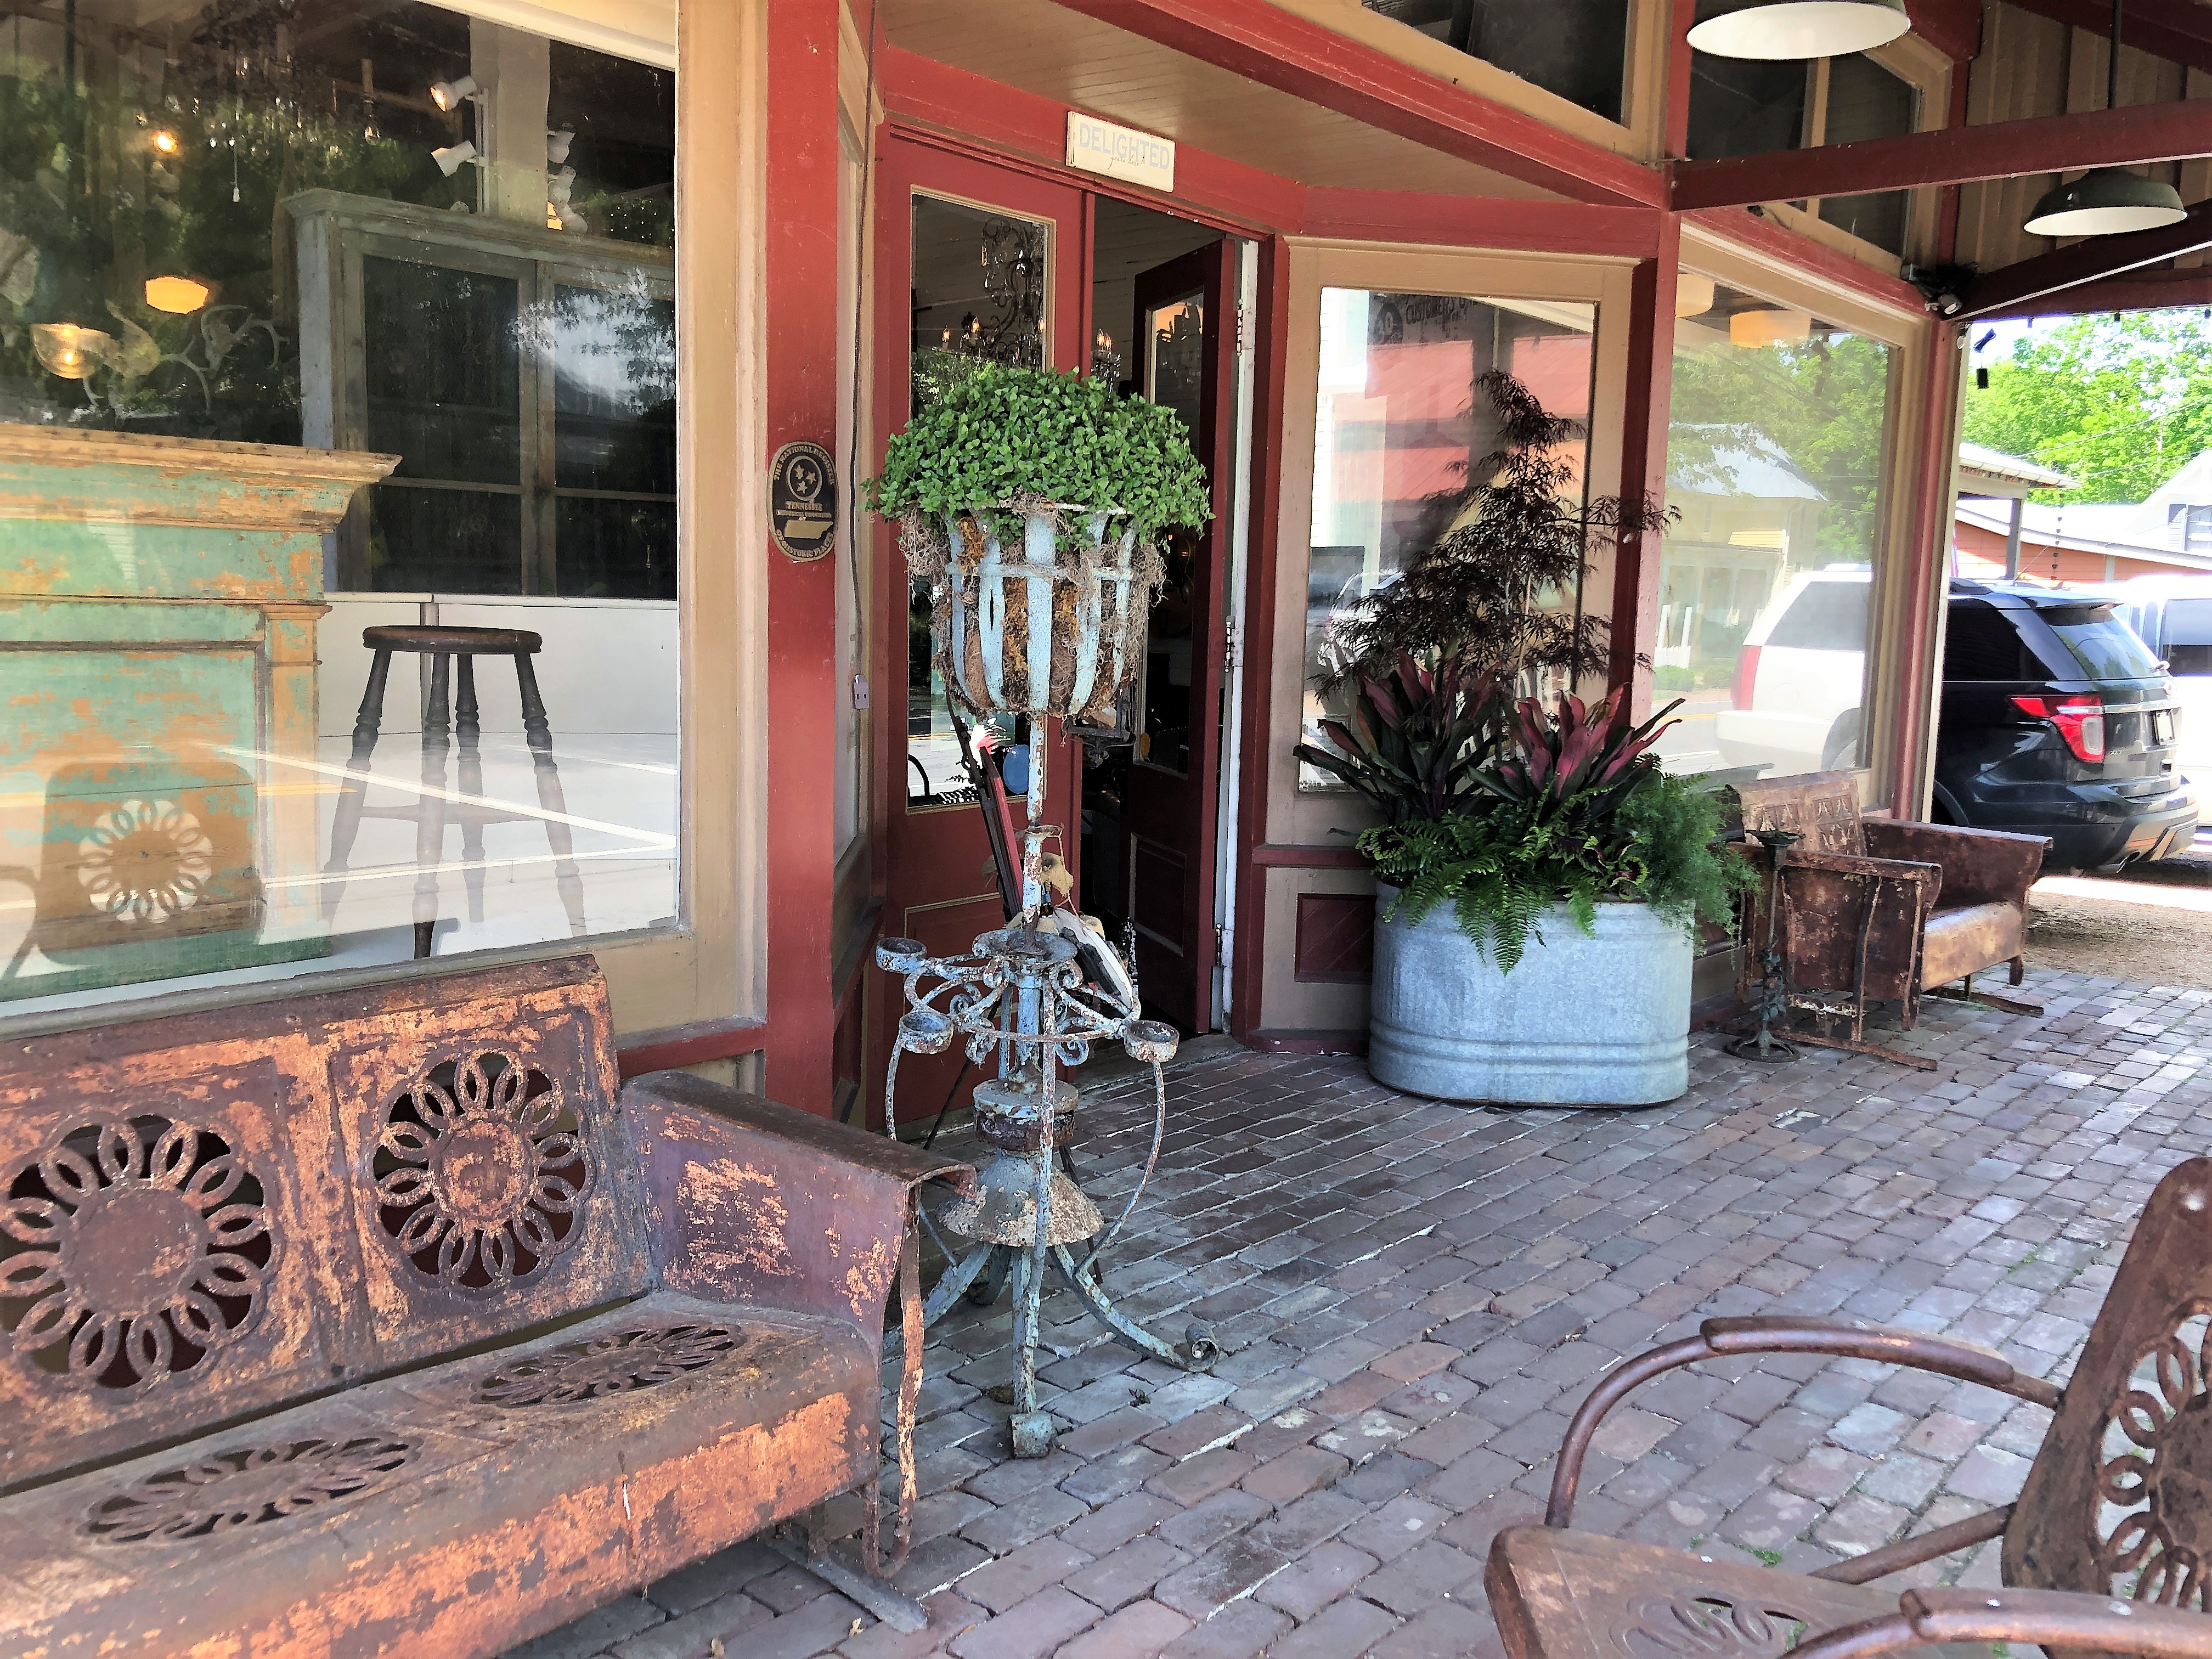 The front of an antique store has large glass windows and a brick sidewalk. On display are rusty garden furniture and plant stands.